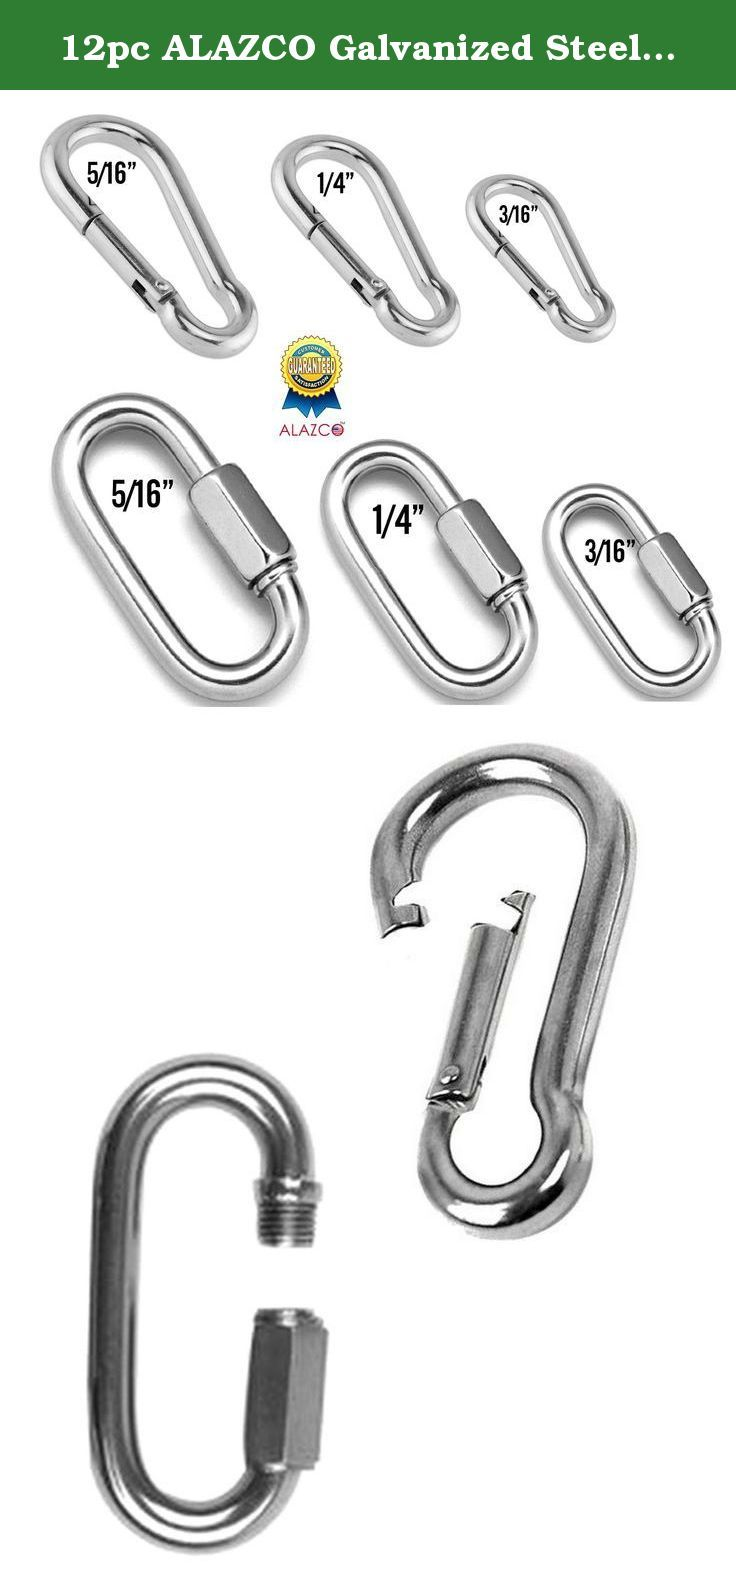 12pc Alazco Galvanized Steel Spring Snap Hooks Quick Link Set Assorted Length Gate Clearances 12pc Set Quickdraws Galvanized Steel Outdoor Recreation